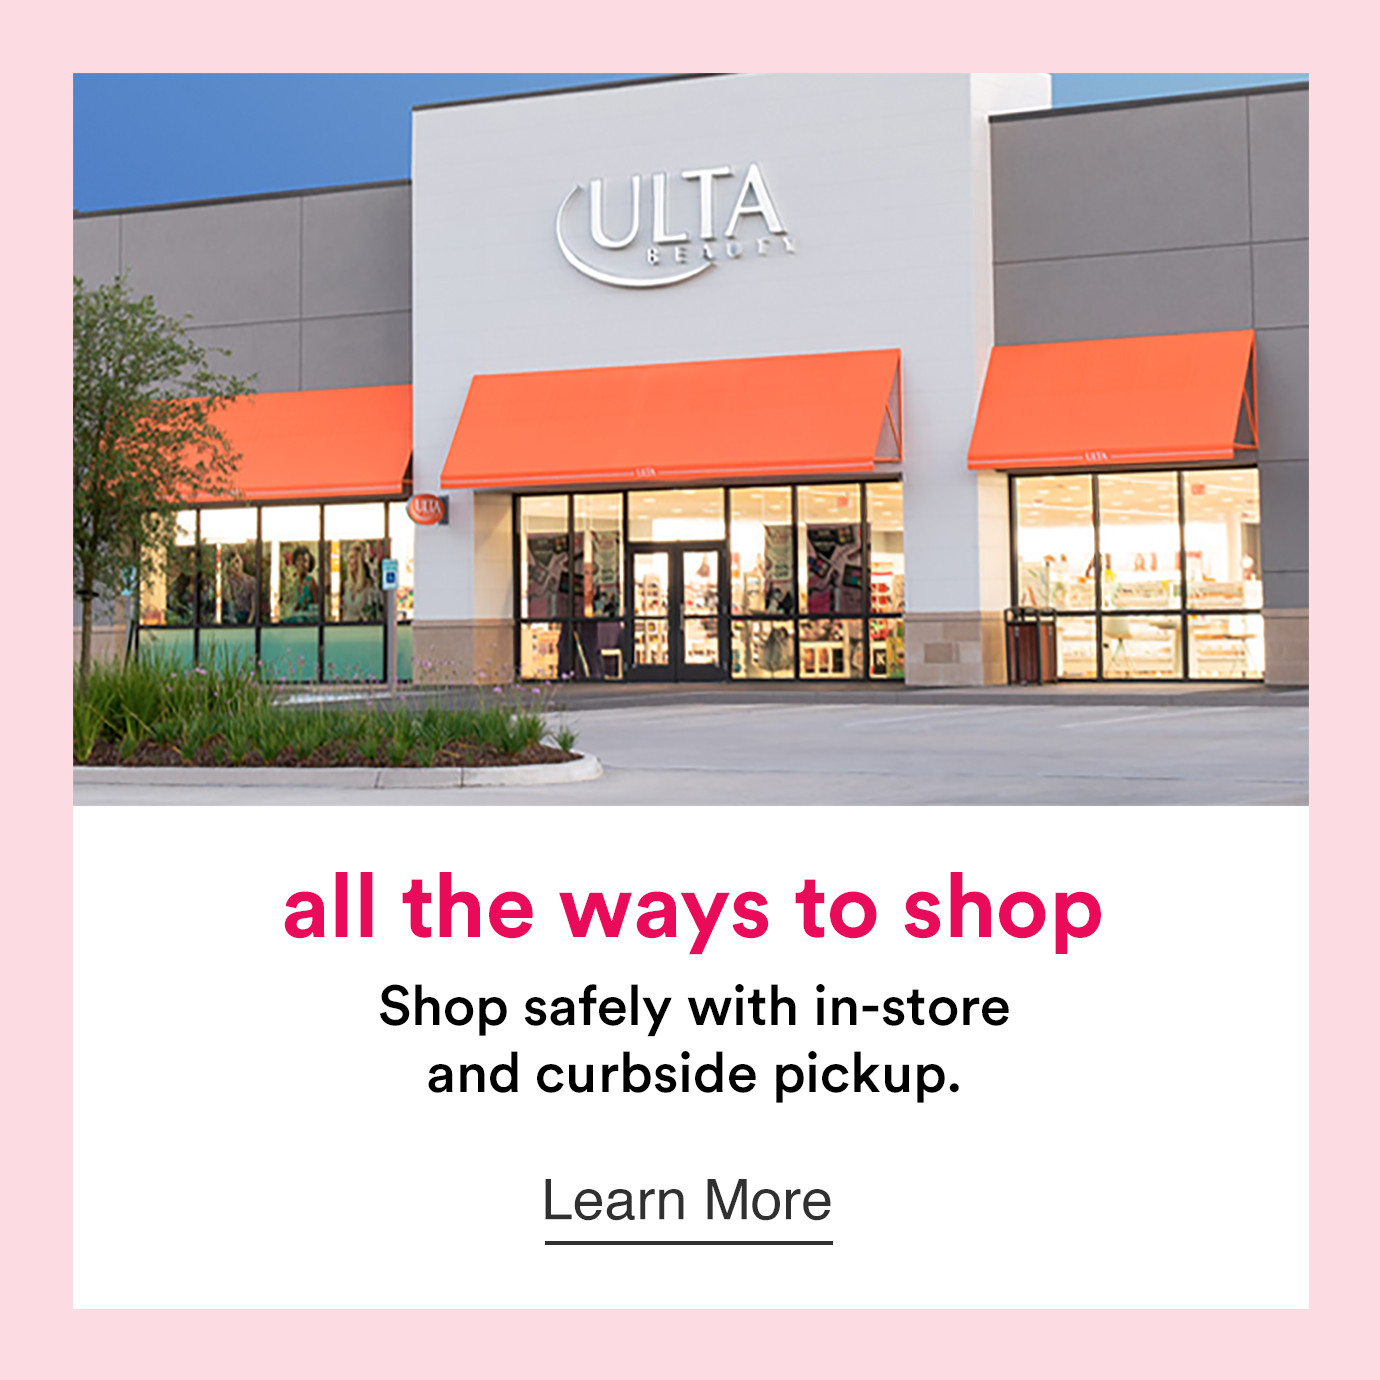 Discover all the Ways to Shop at Ulta Beauty. Shop safely with in-store and curbside pickup